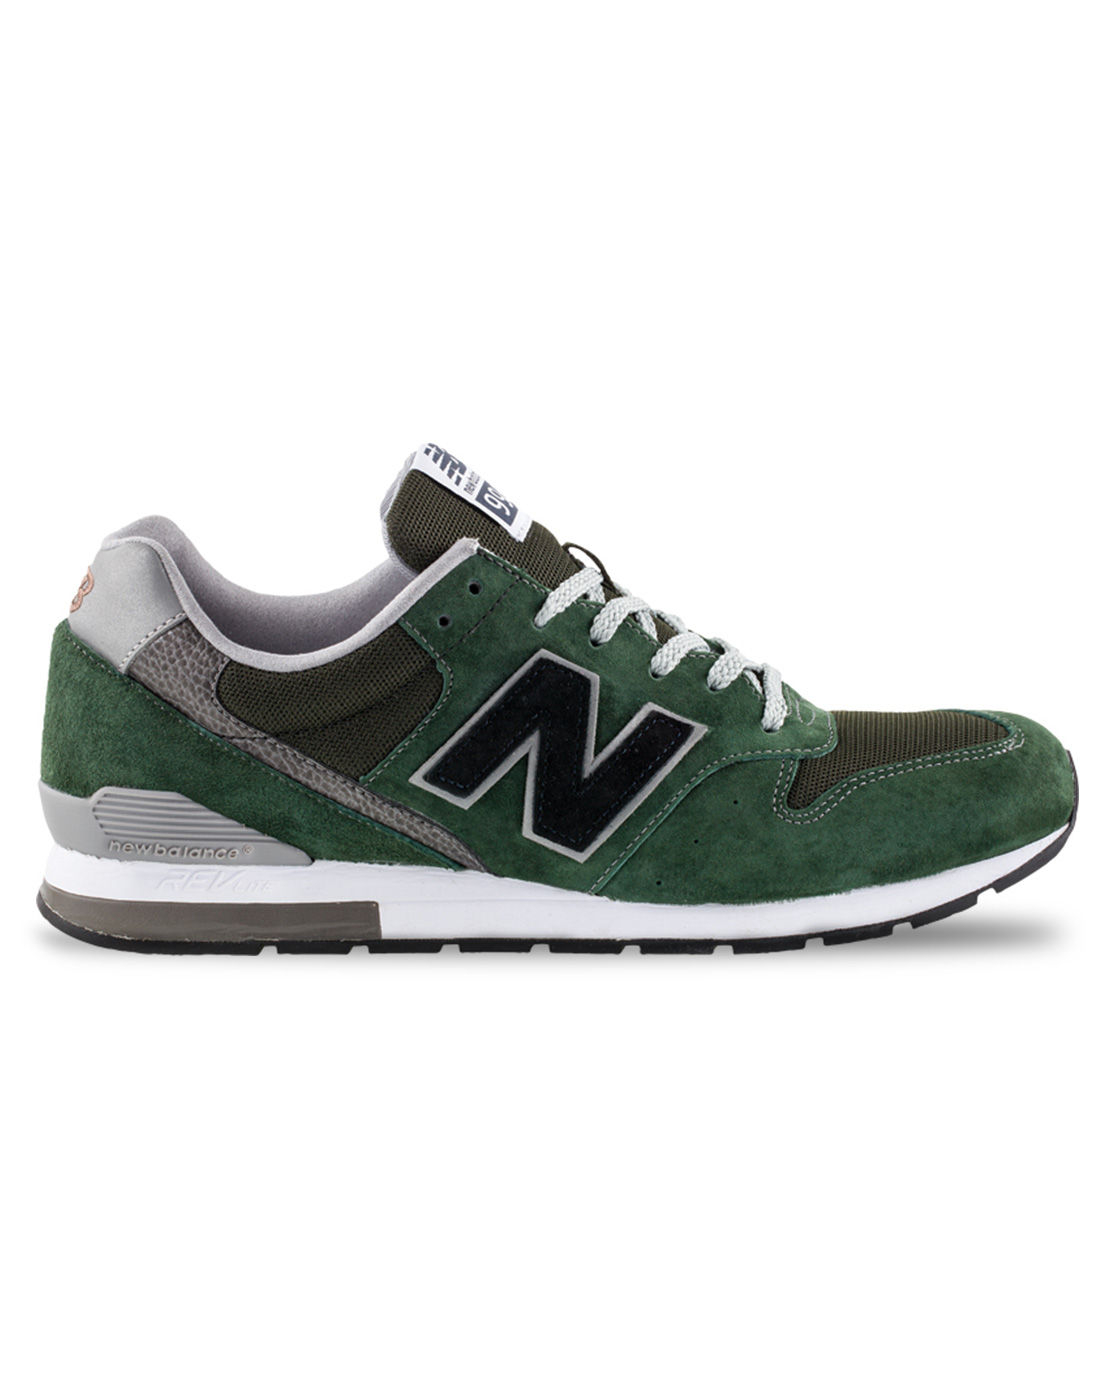 new balance 996 green suede sneakers in green for men lyst. Black Bedroom Furniture Sets. Home Design Ideas